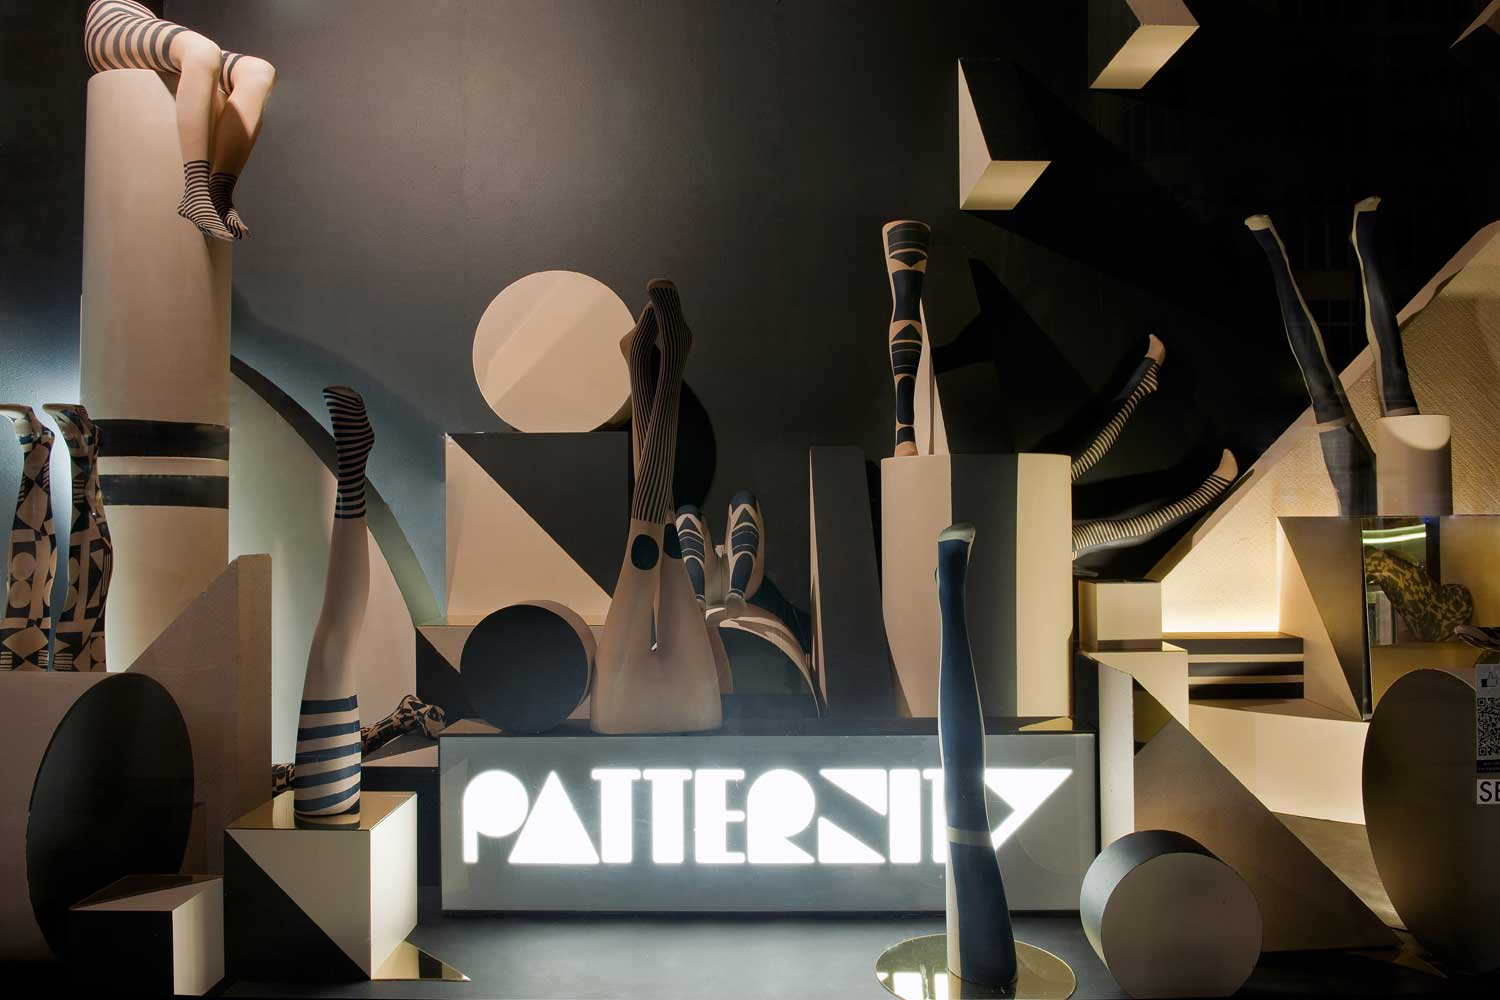 The Patternity window for Selfridges was part of the  Bright Young Things  campaign in 2011.